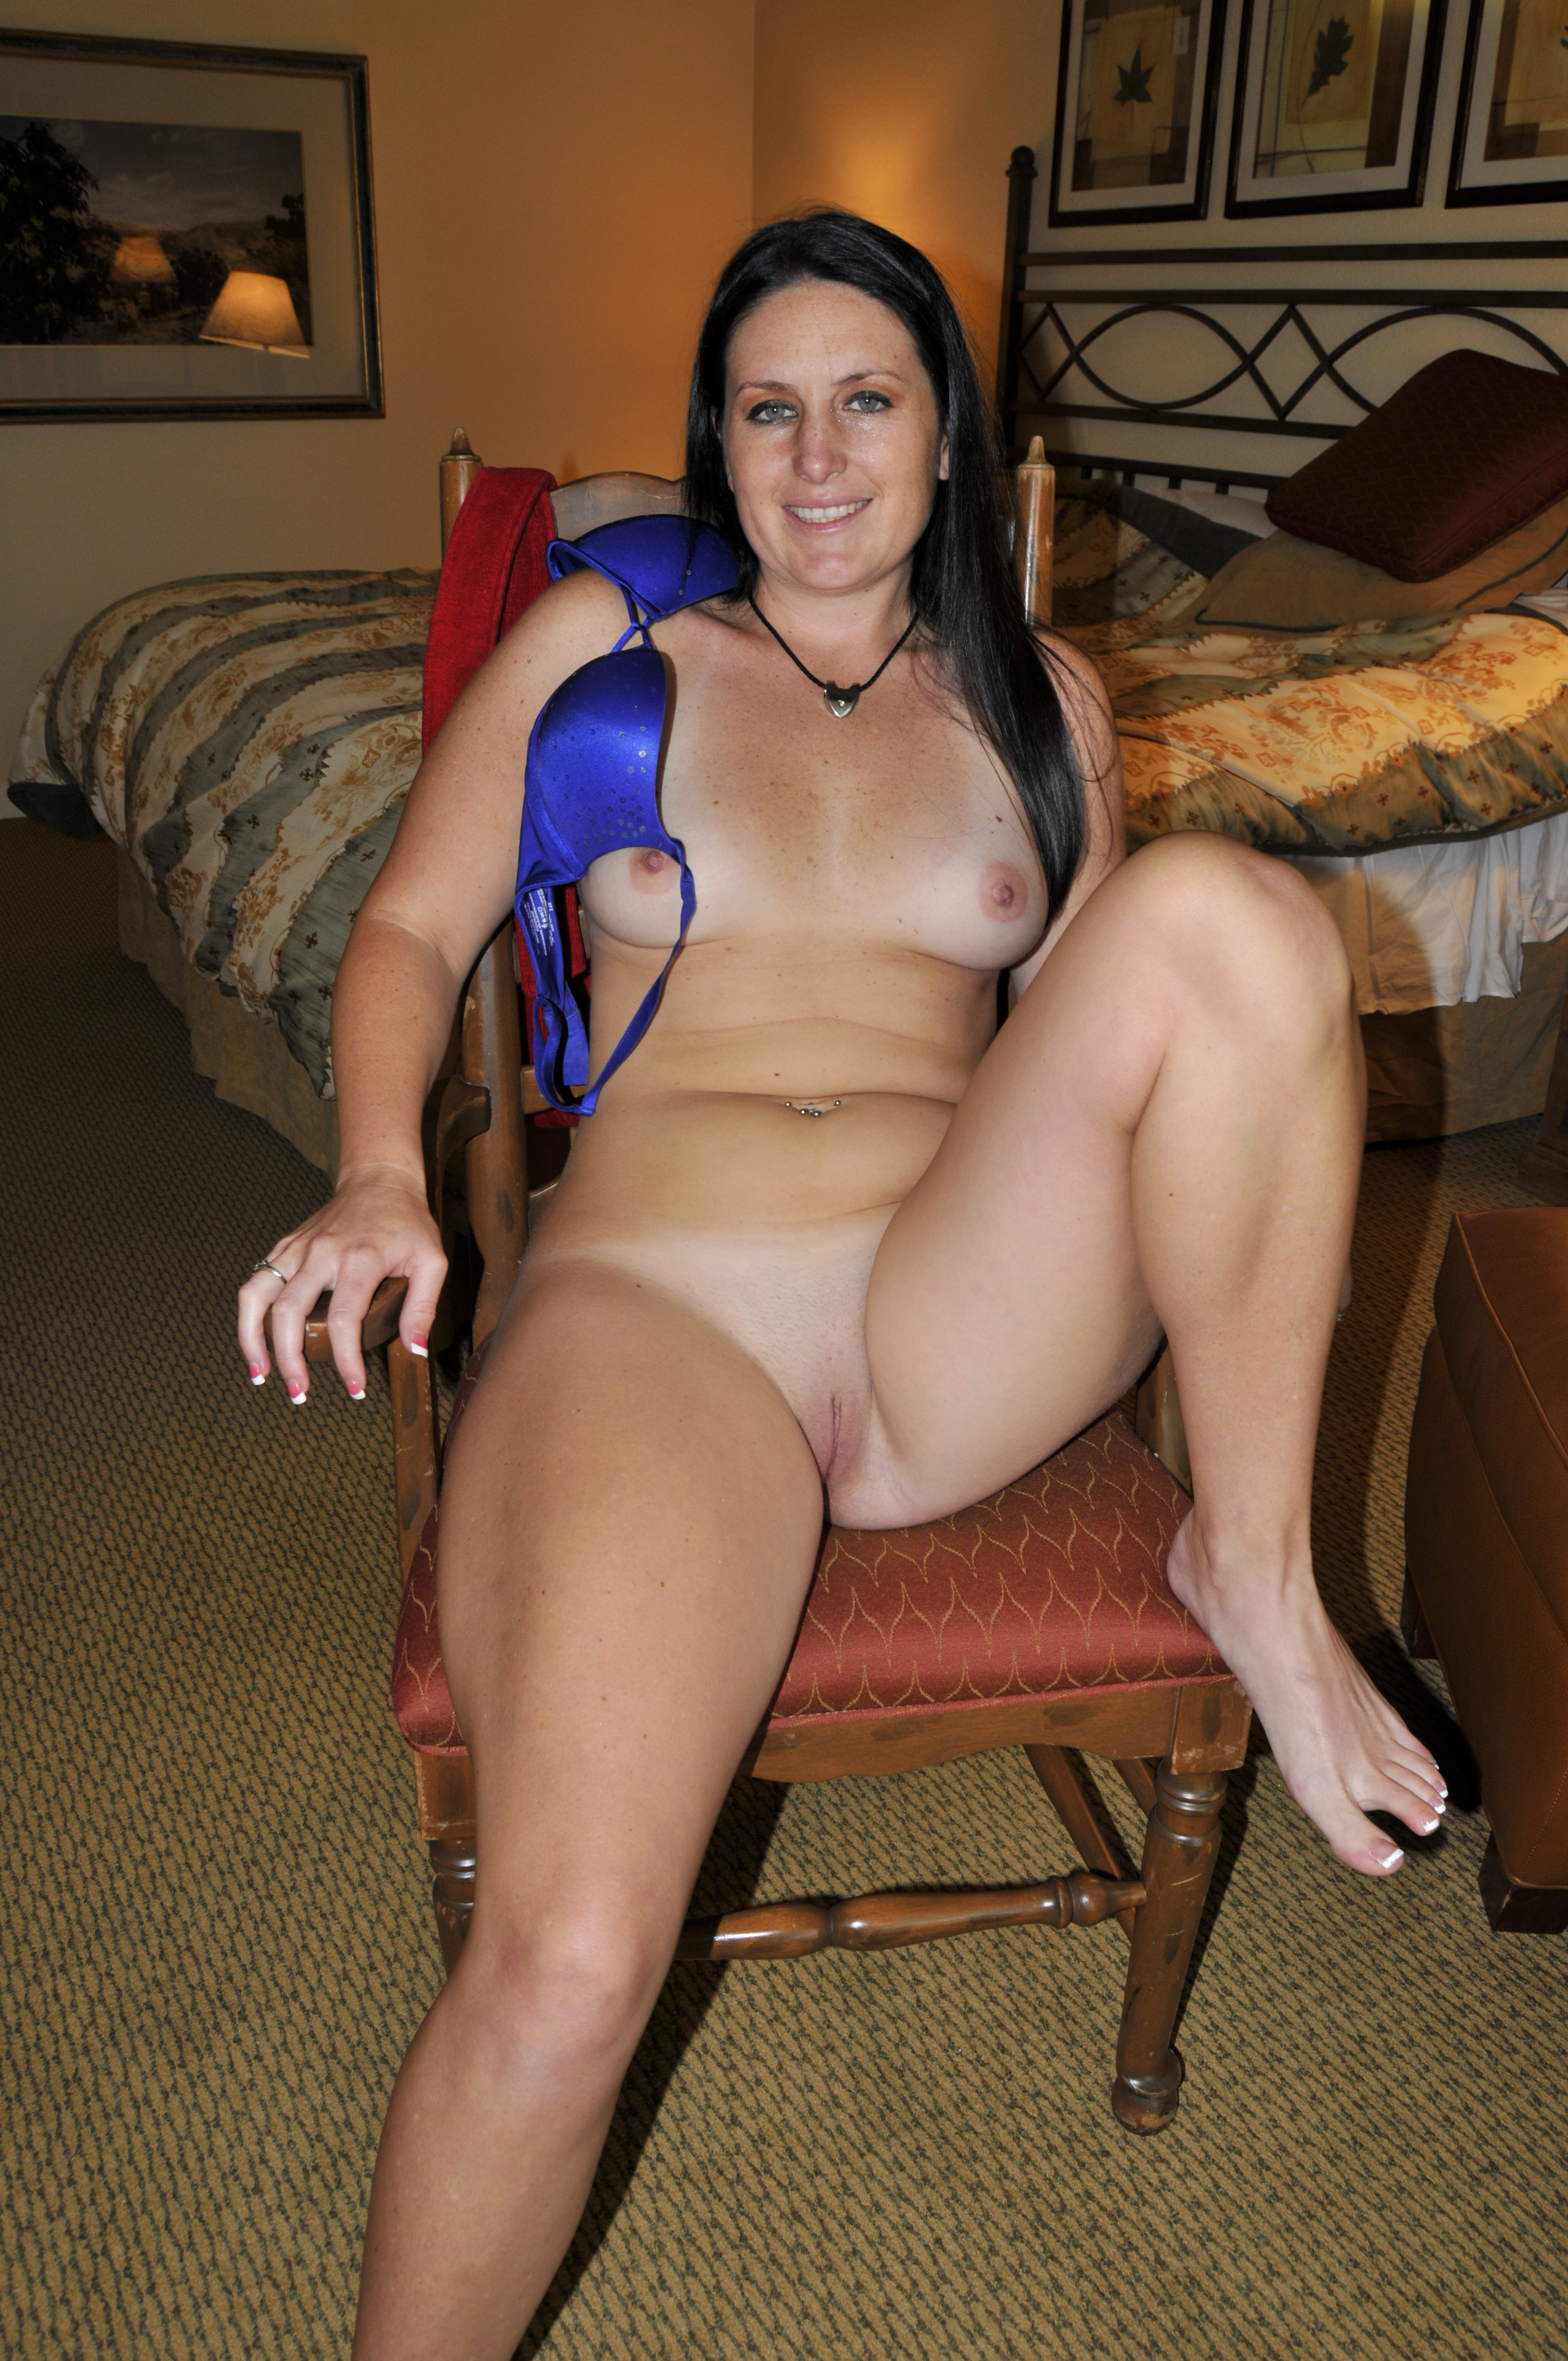 Female hung by clit